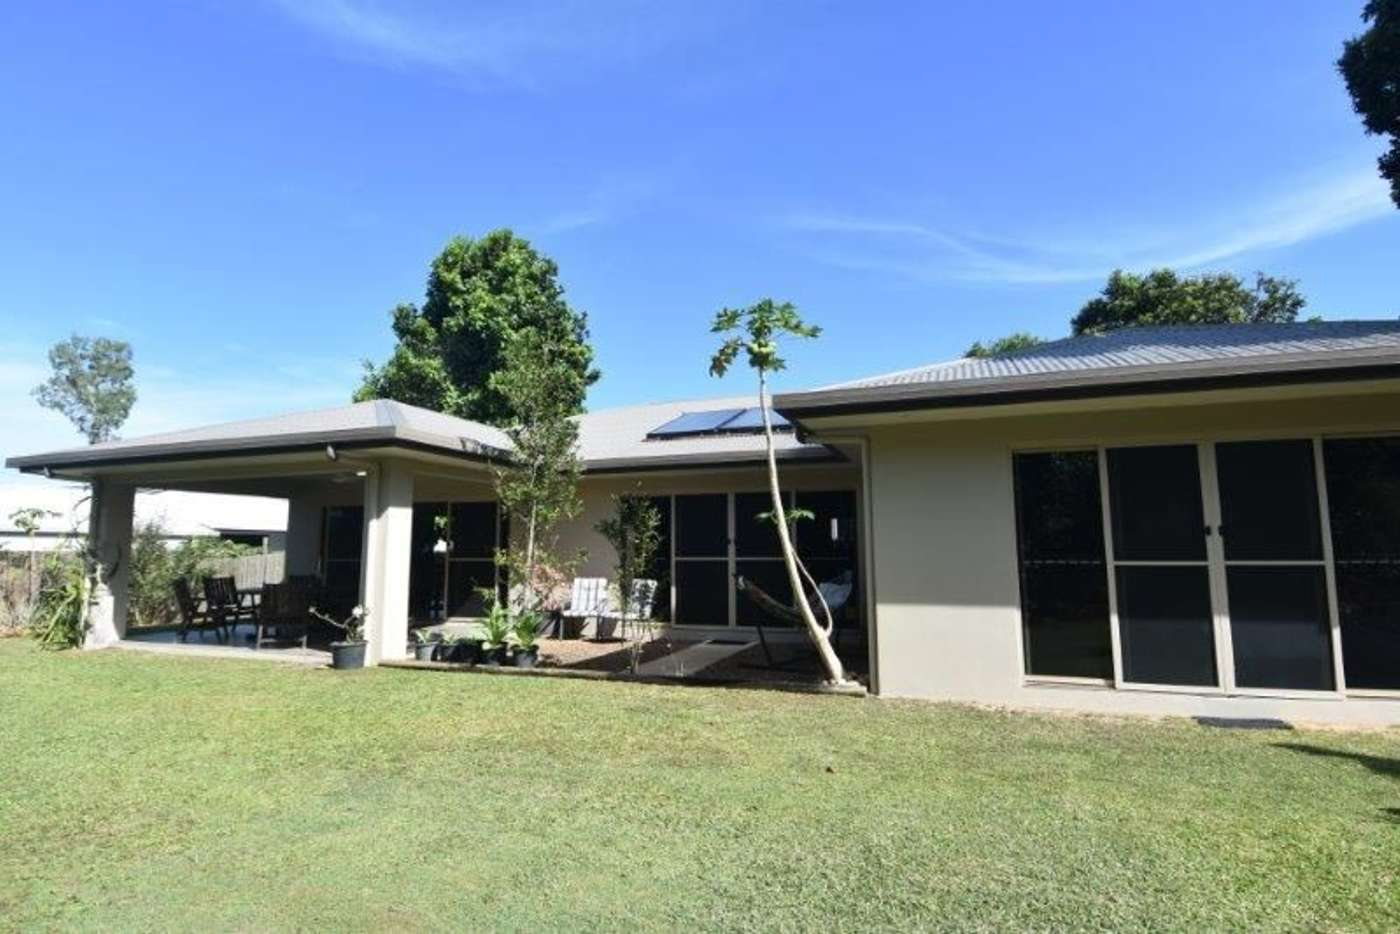 Main view of Homely house listing, 3 Sanctuary Crescent, Wongaling Beach QLD 4852